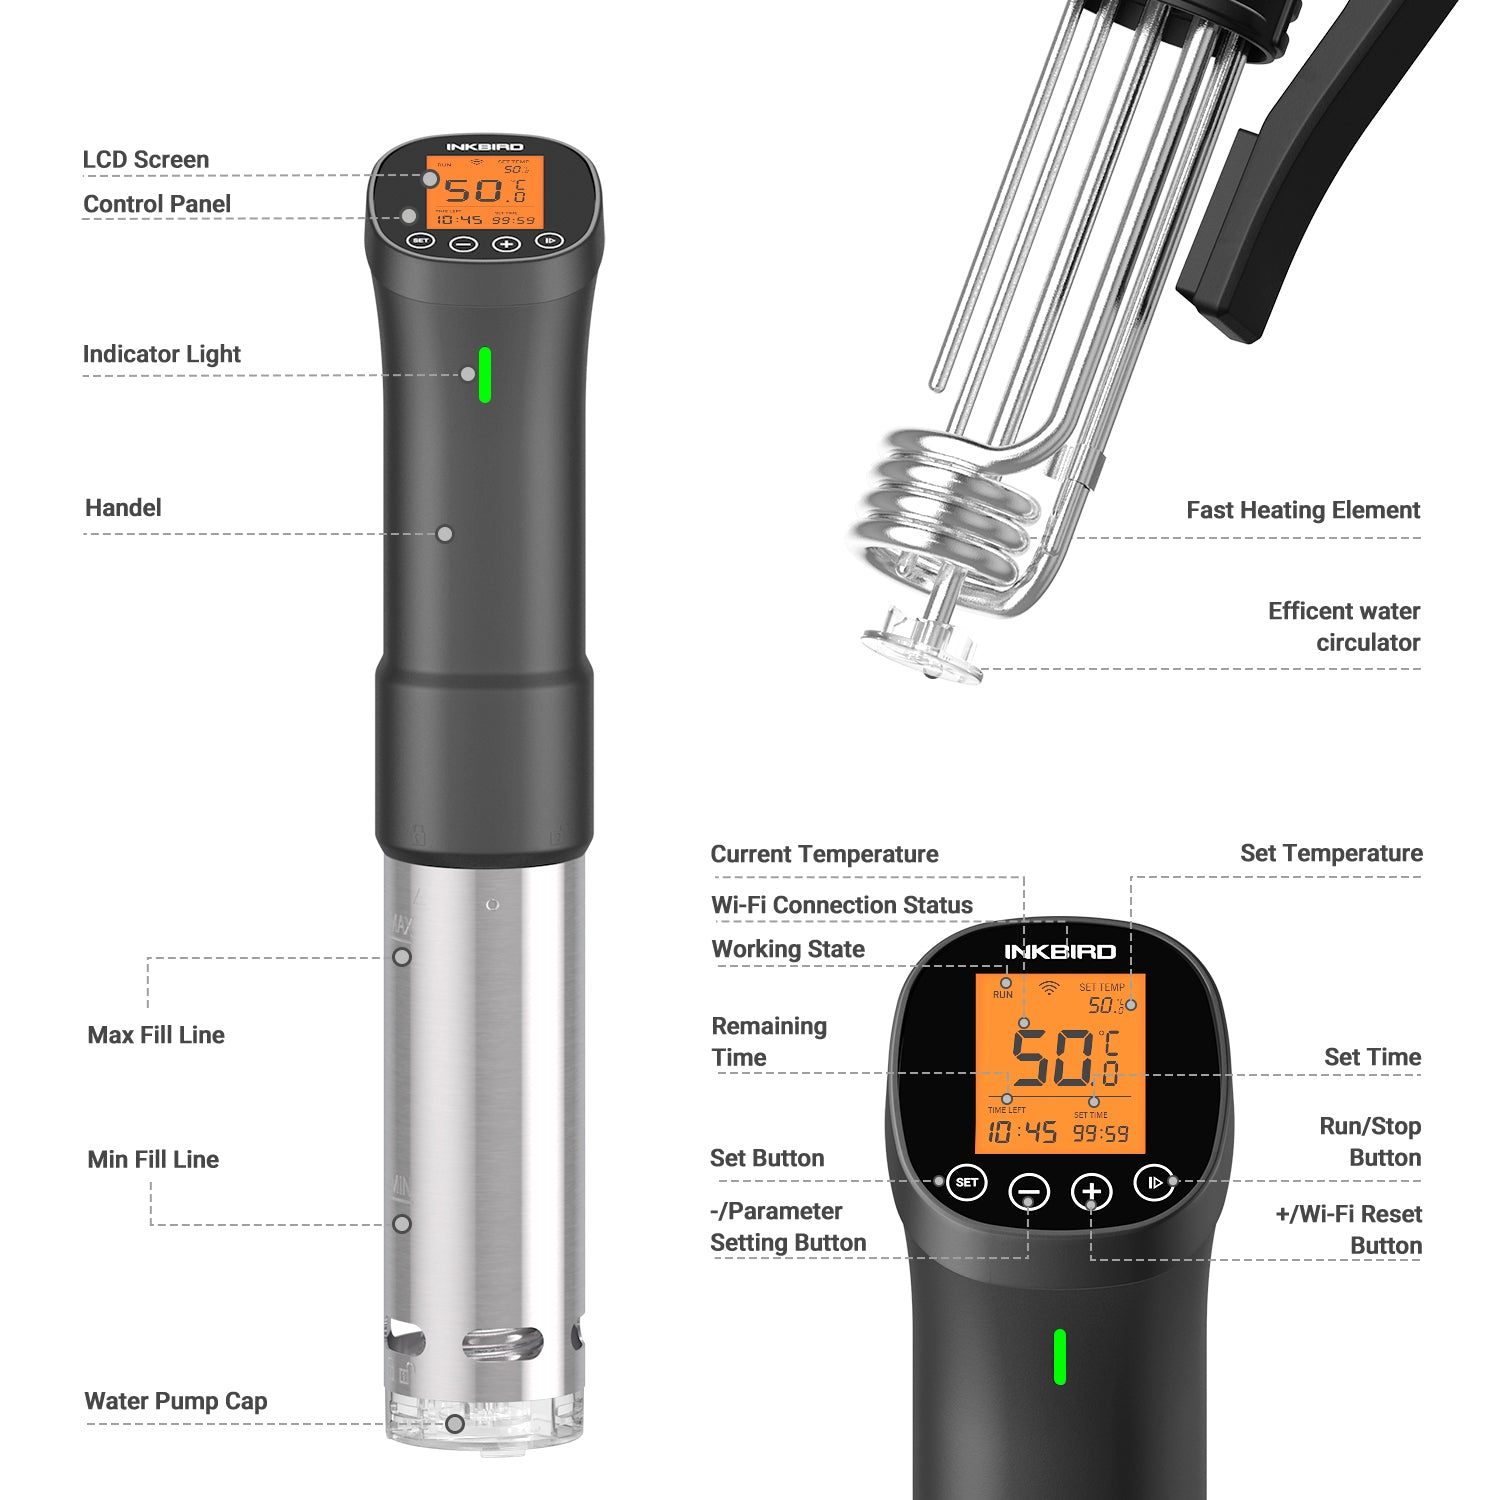 Inkbird ISV-200W Wi-Fi Immersion Circulator Precision Sous Vide Cooker